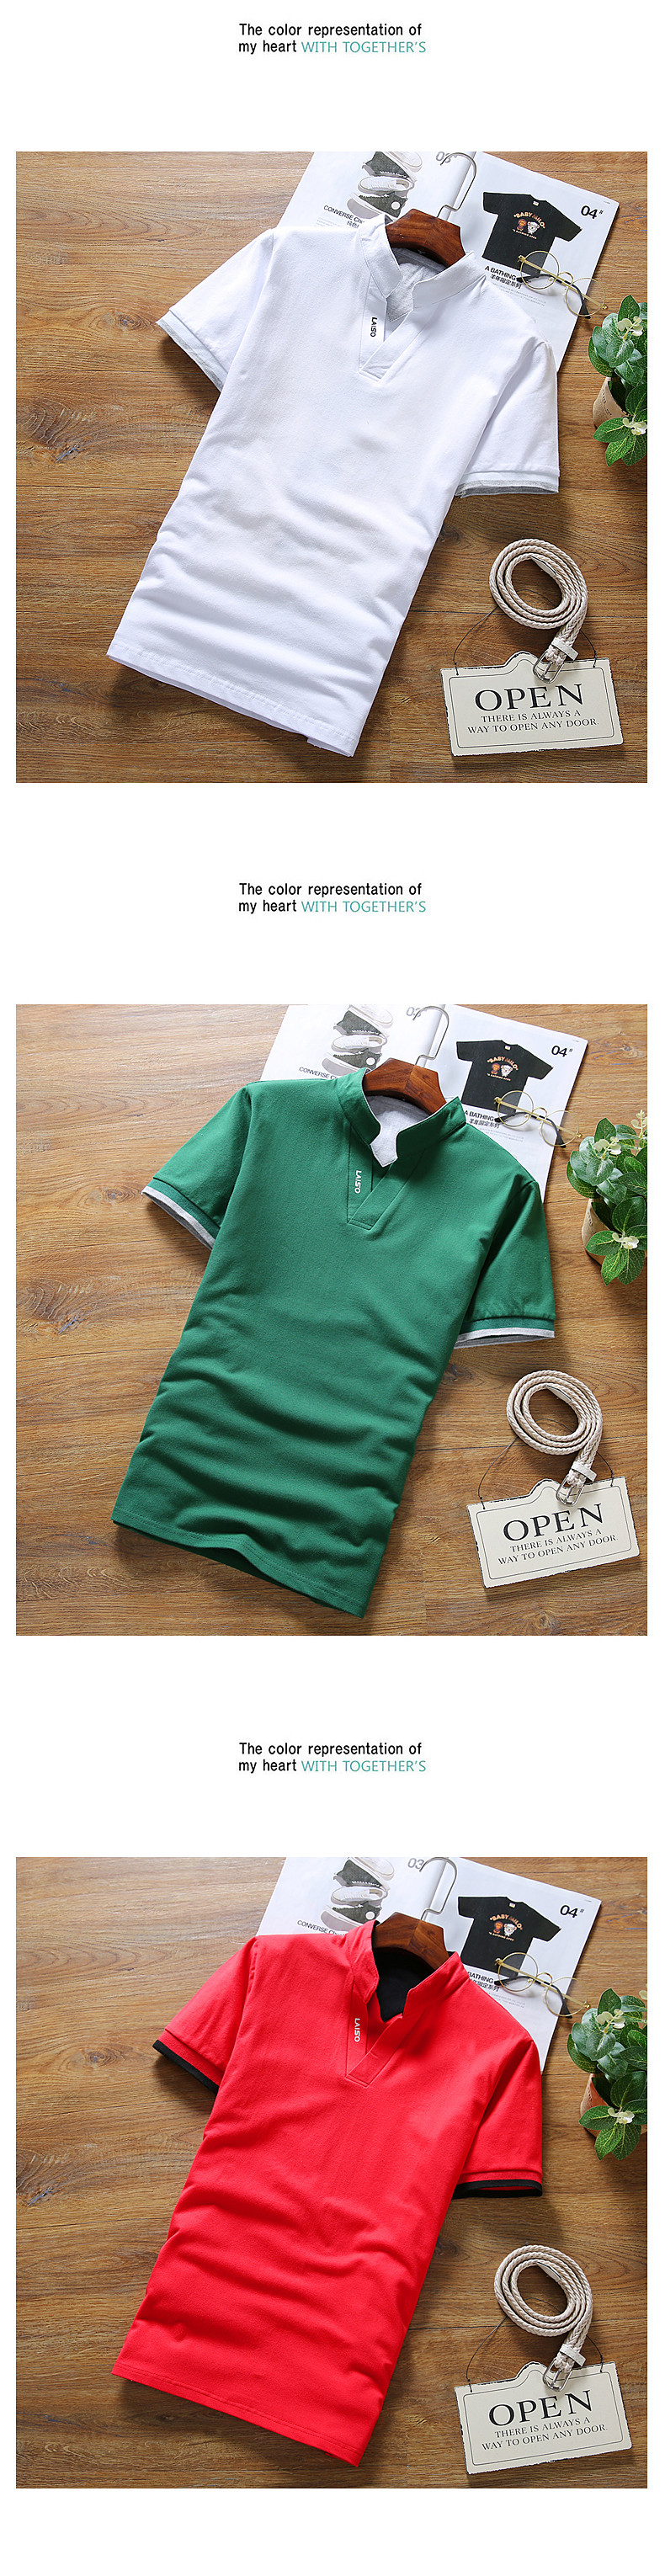 Cotton Men Polo Shirt Tops Fashion Brand Plus Size Short Sleeve Black White Polo Shirt Homme Camisa 35